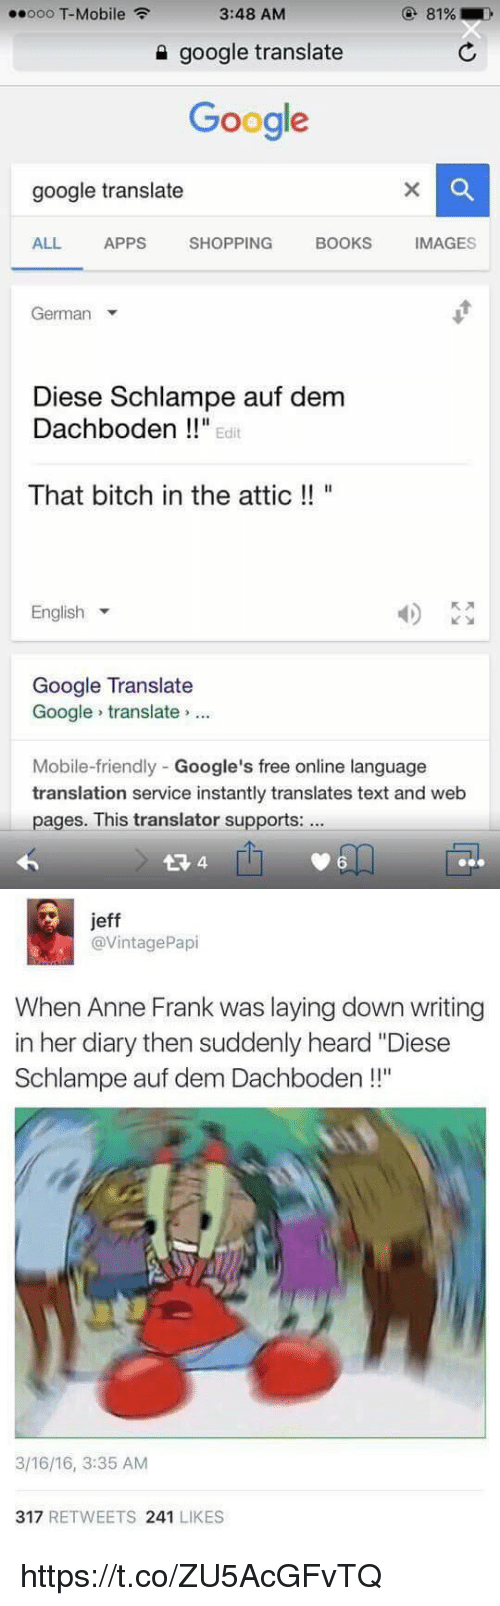 """Bitch, Books, and Friends: ooo T-Mobile  3:48 AM  google translate  Google  google translate  BOOKS  MAGES  ALL  APPS  SHOPPING  German  Diese Schlampe auf dem  Dachboden Edit  That bitch in the attic  English  Google Translate  Google translate  Mobile-friendly Google's free online language  translation service instantly translates text and web  pages. This translator supports:  4   jeff  @Vintage Papi  When Anne Frank was laying down writing  in her diary then suddenly heard """"Diese  ll''  Schlampe auf dem Dachboden  3/16/16, 3:35 AM  317  RETWEETS  241  LIKES https://t.co/ZU5AcGFvTQ"""